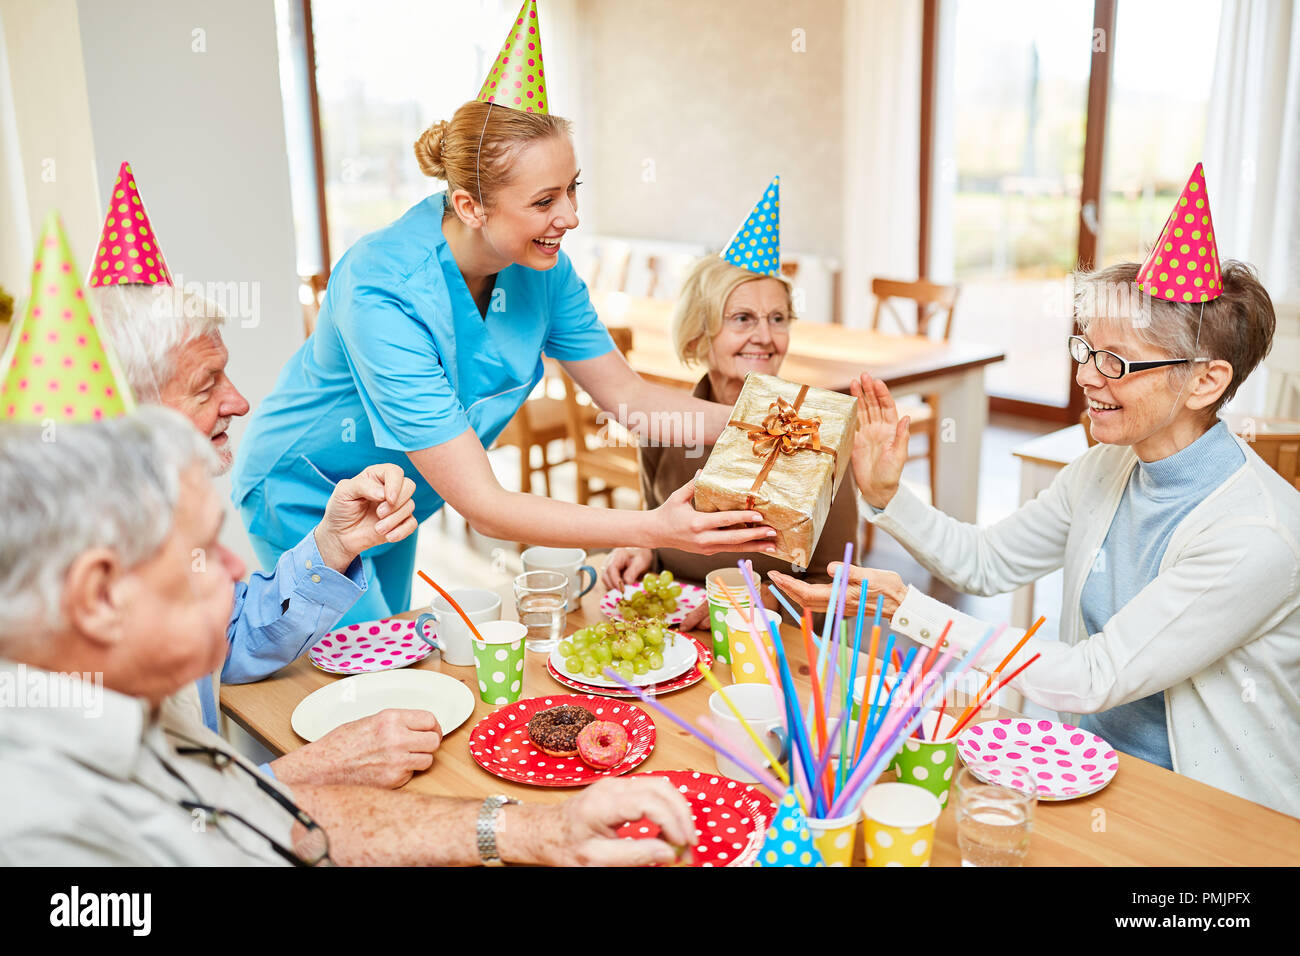 Caregiver hands over a gift package to an old woman at her birthday party - Stock Image